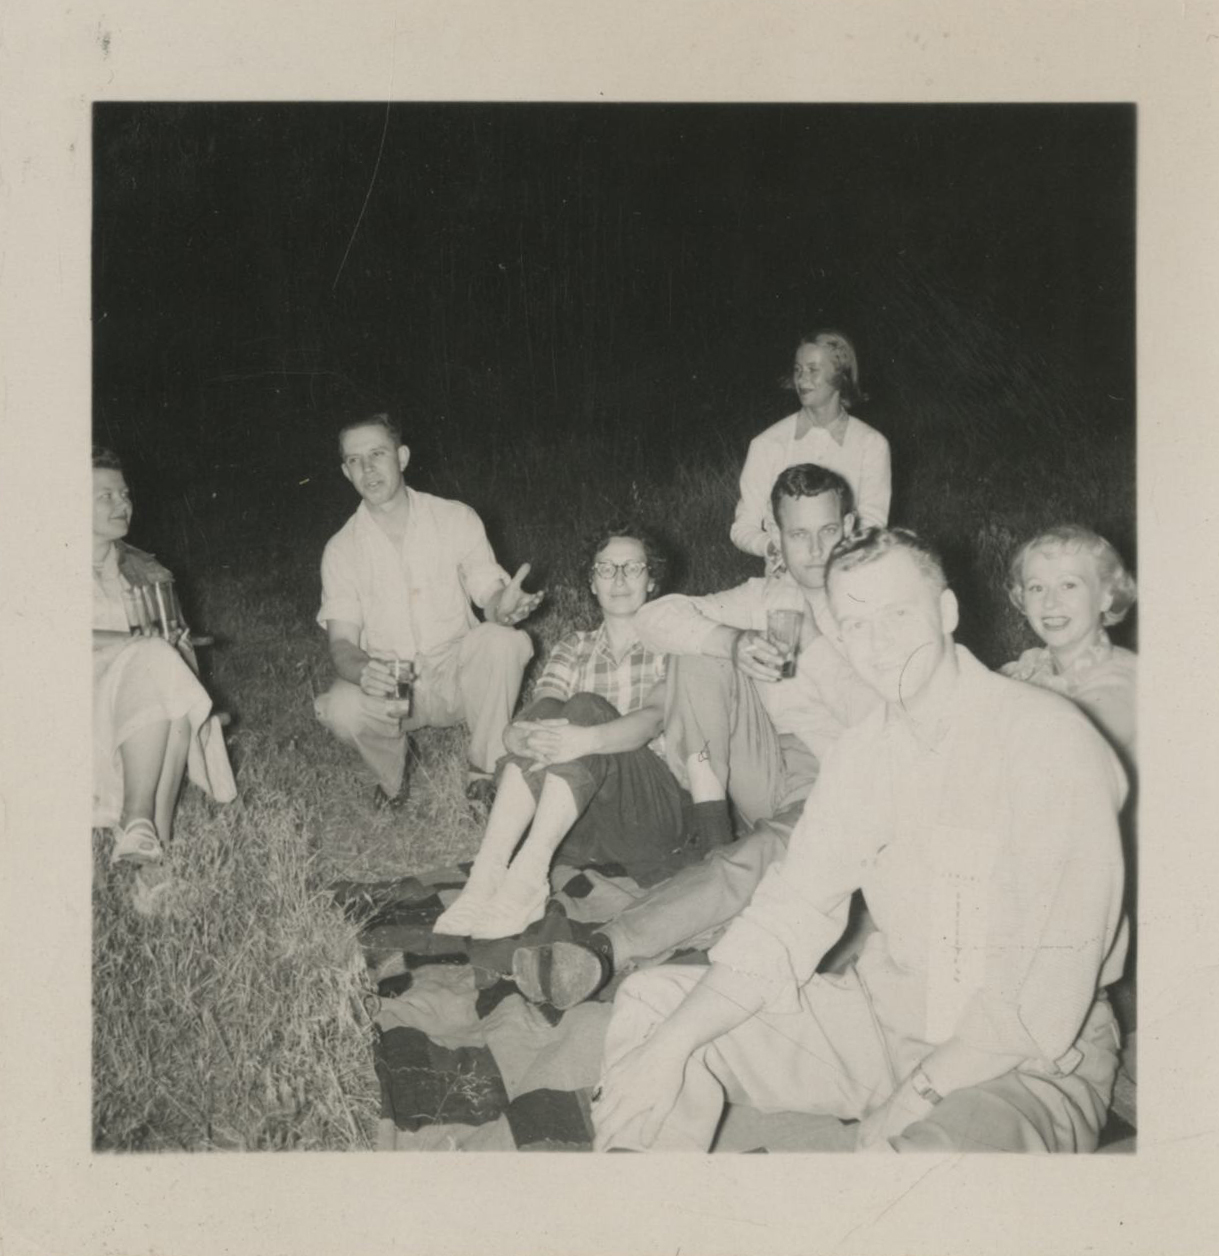 McCall, seated center, with friends